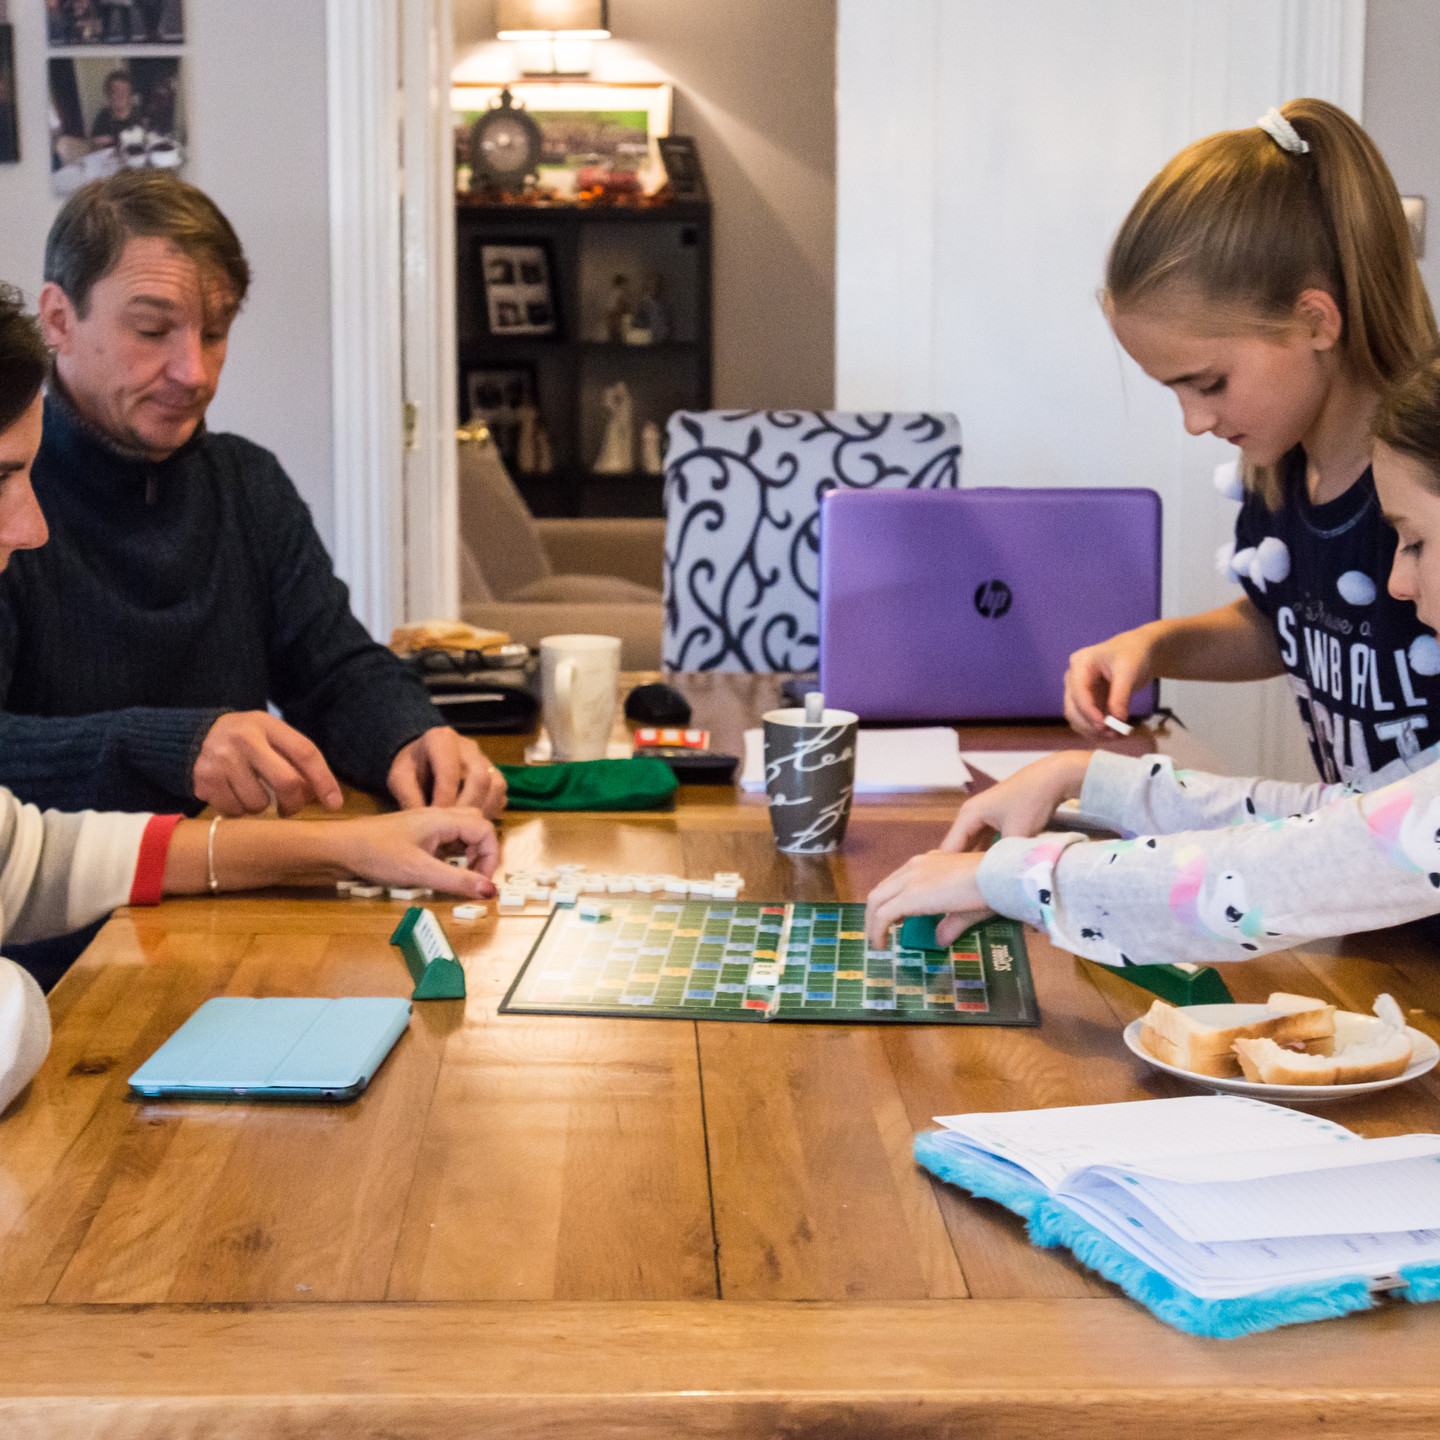 Birmingham family photography, lifestyle photograph of a family playing a board game together